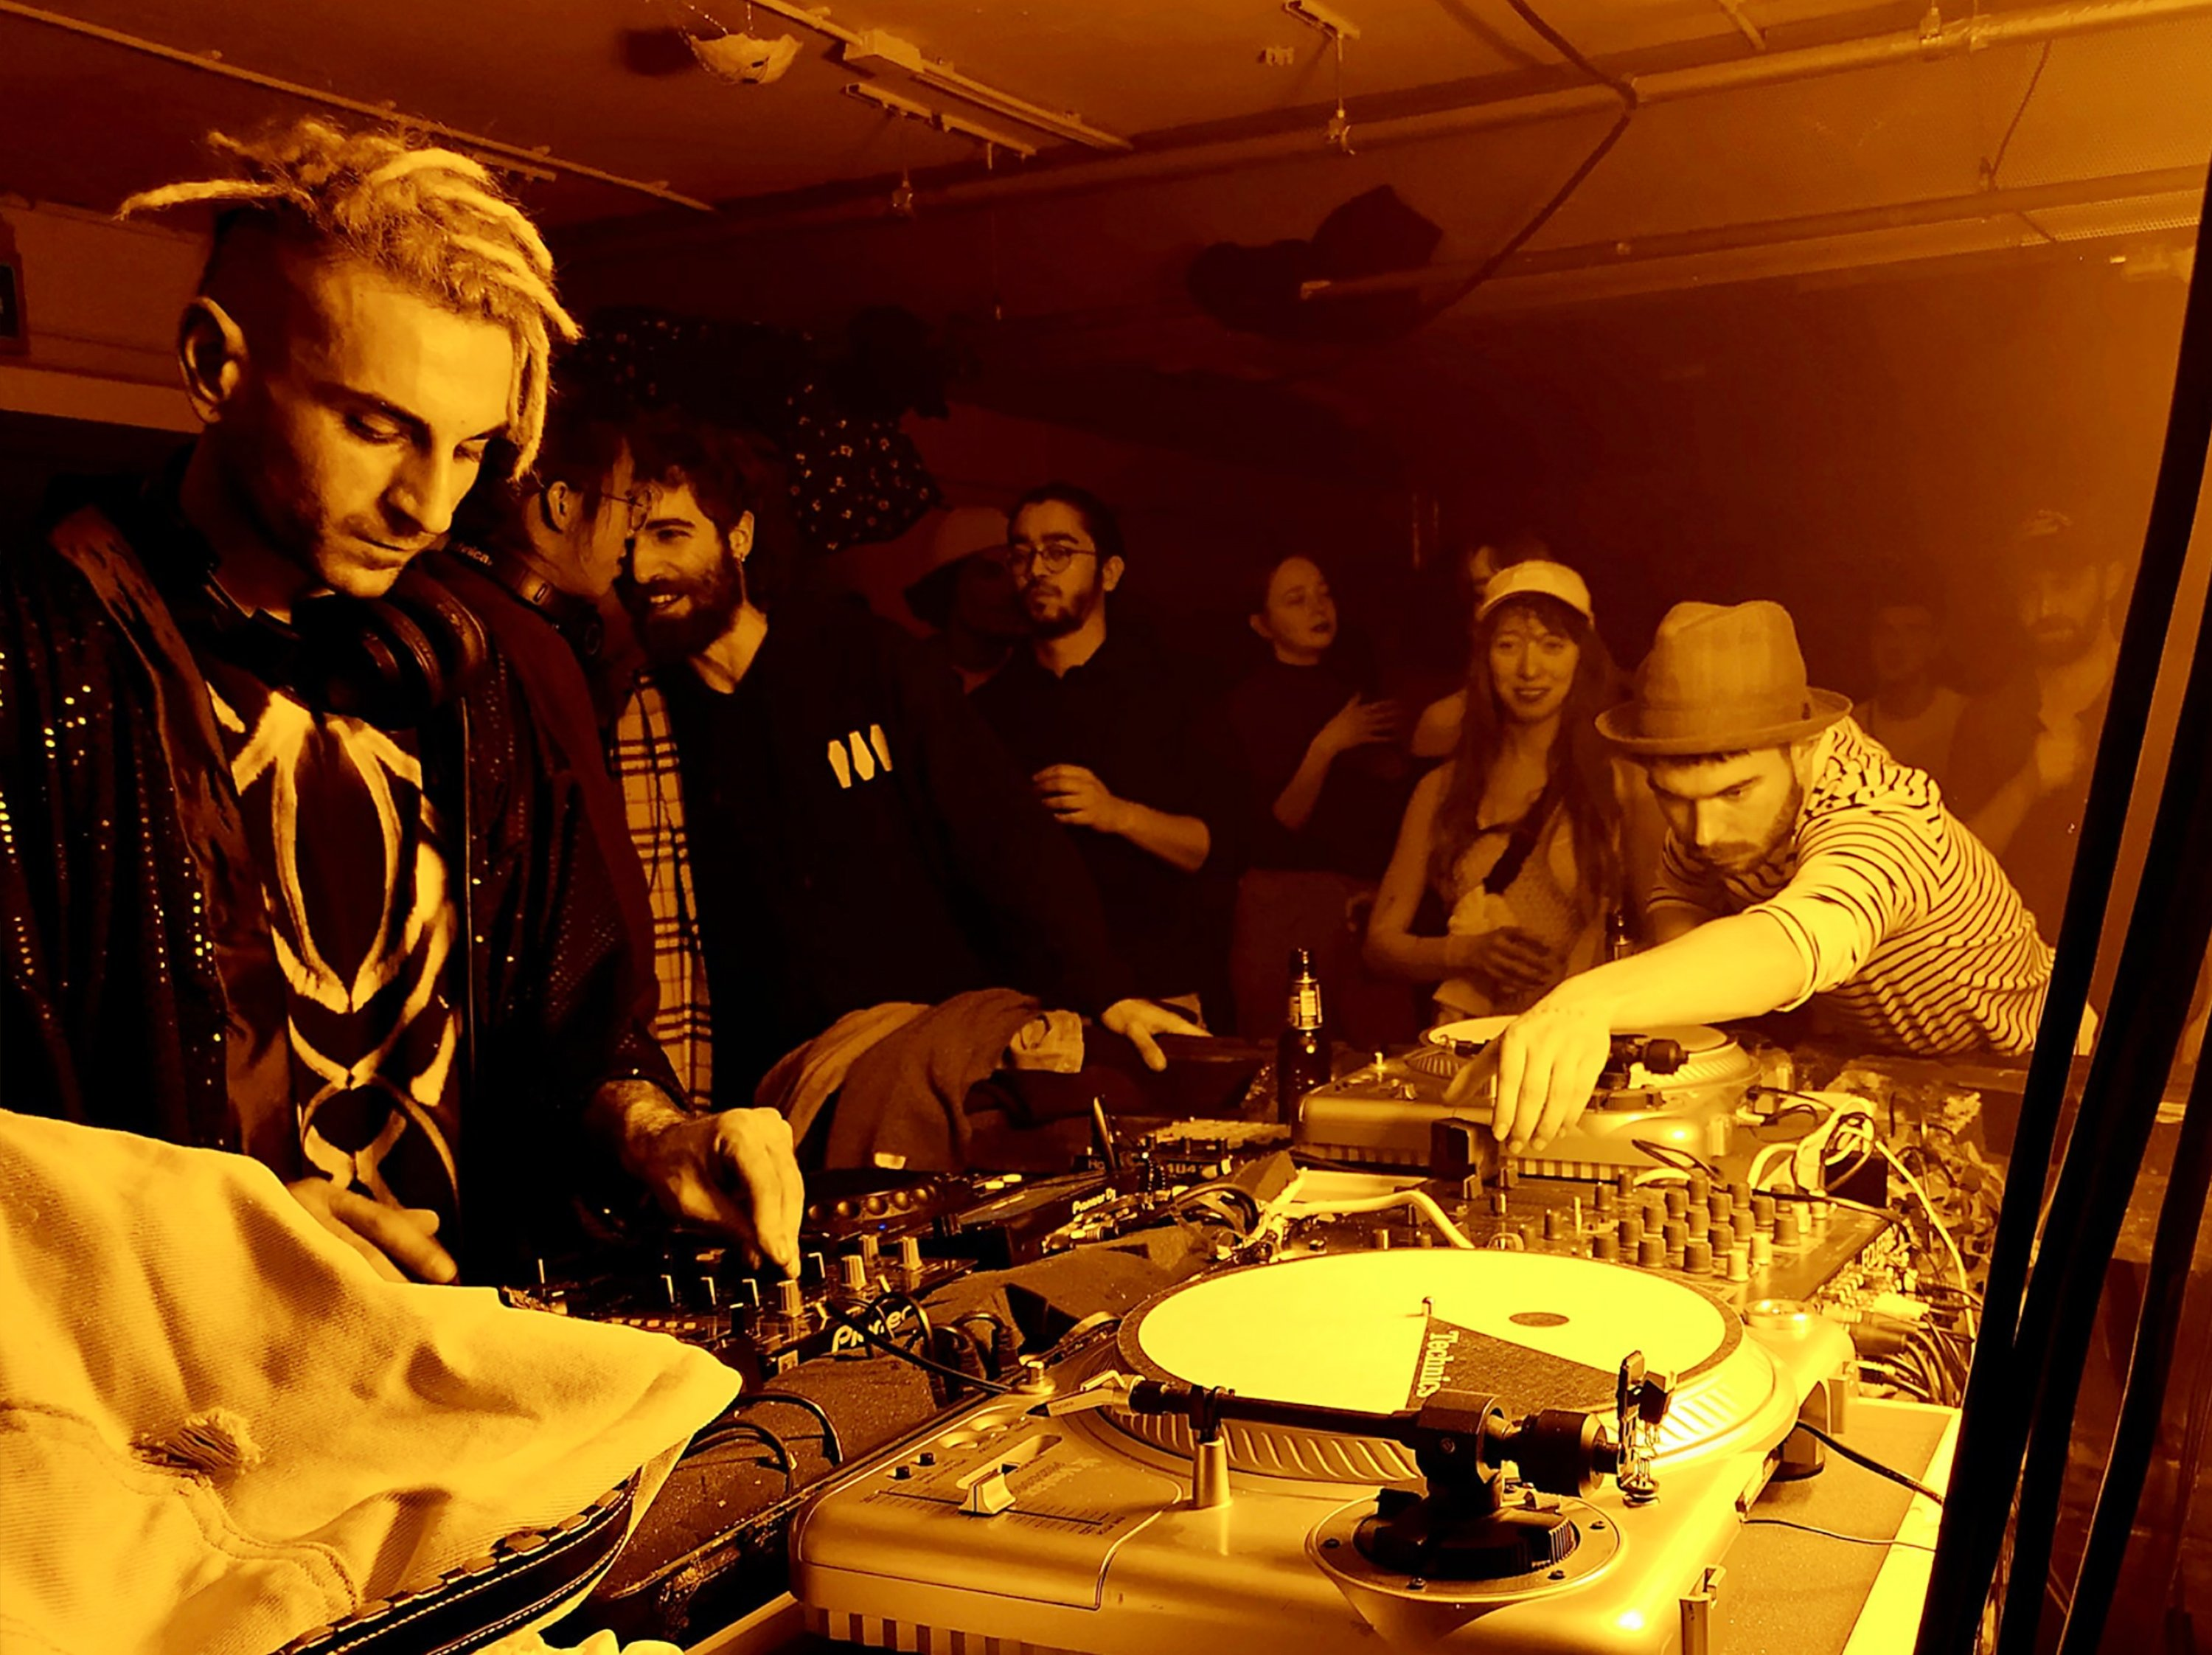 Berk Duygun started to perform as a DJ during his first year in the art academy.